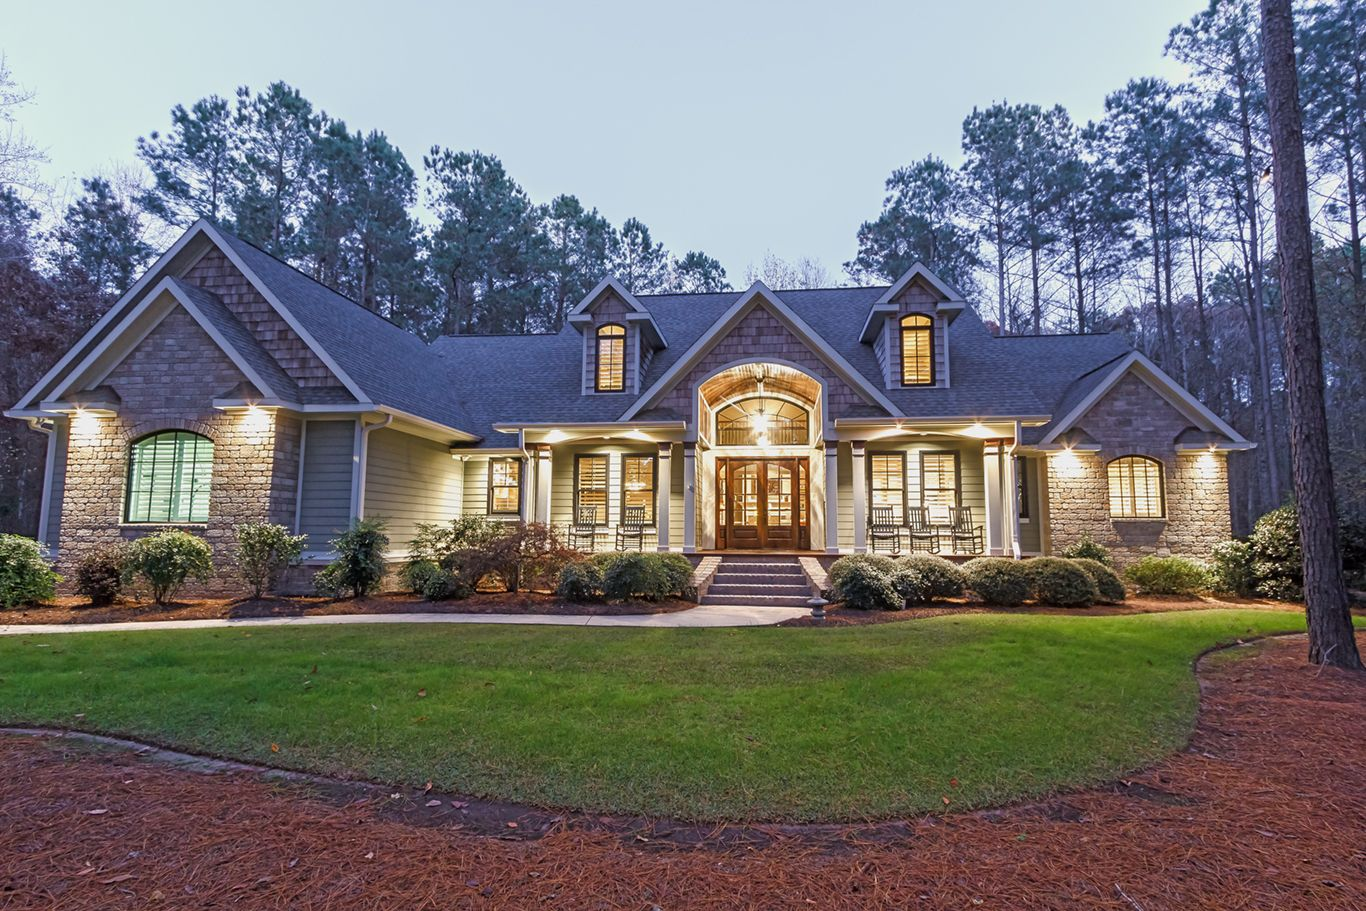 Gallery Gables Run House Craftsman House Plans Craftsman House Craftsman Style House Plans